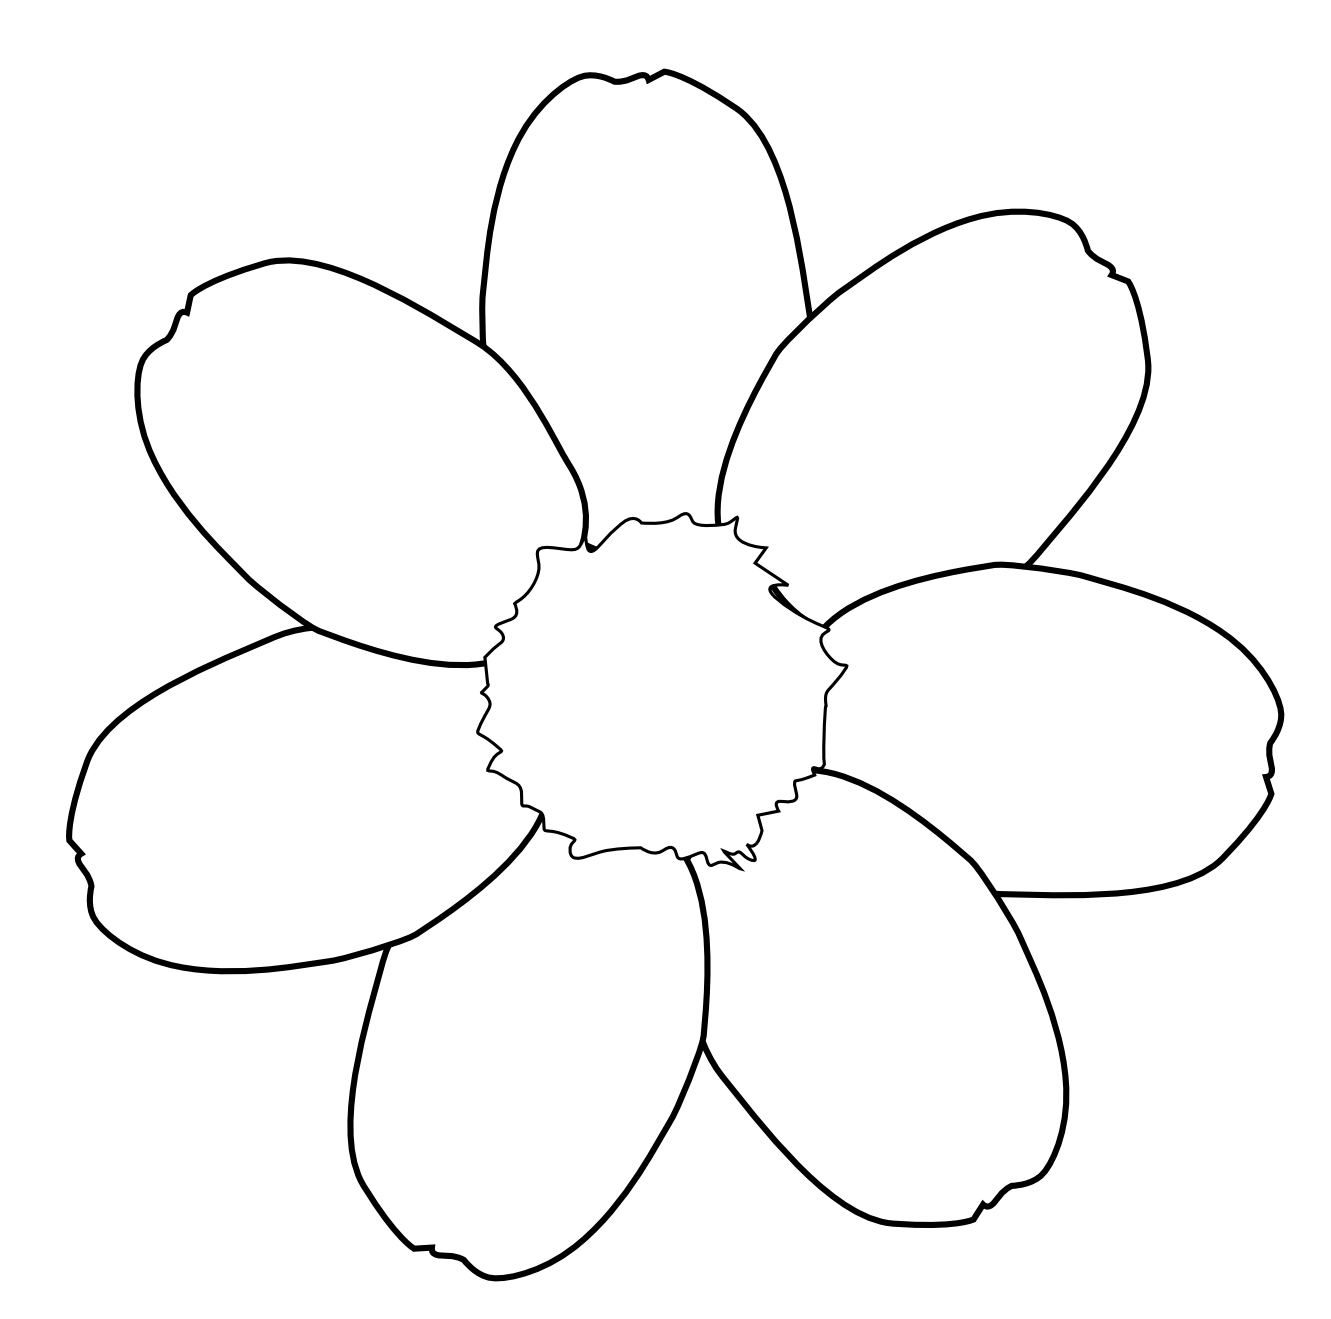 Daisy Flower Black White Line Art Tattoo Clip Art